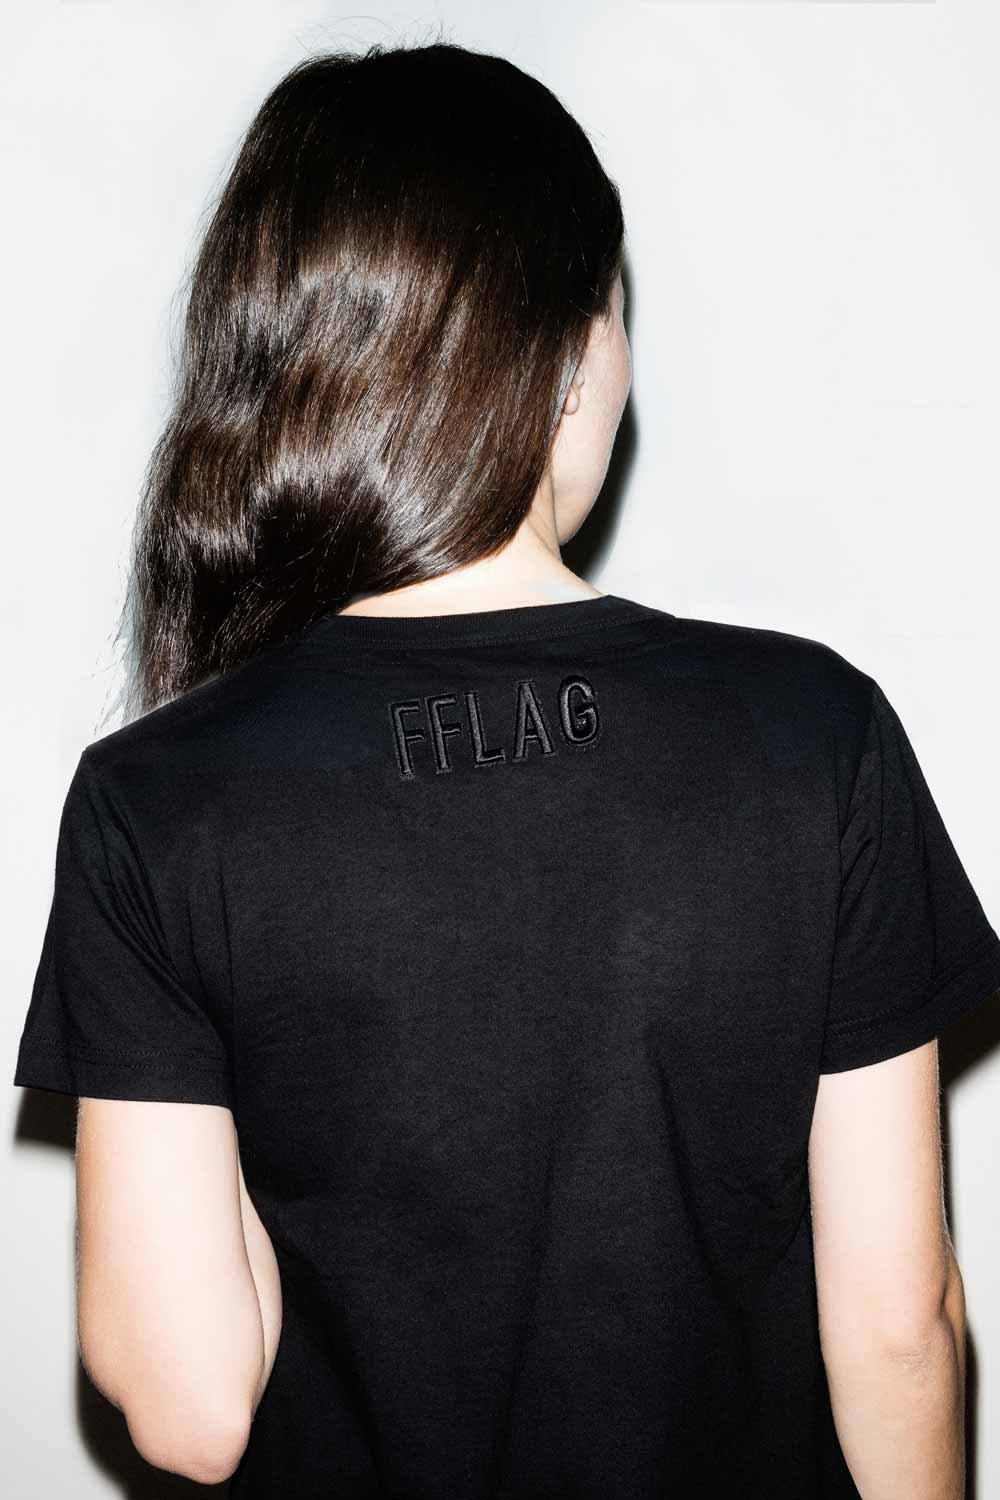 fflag-tee-shirt-ornement-miroir-broderie-couture-6